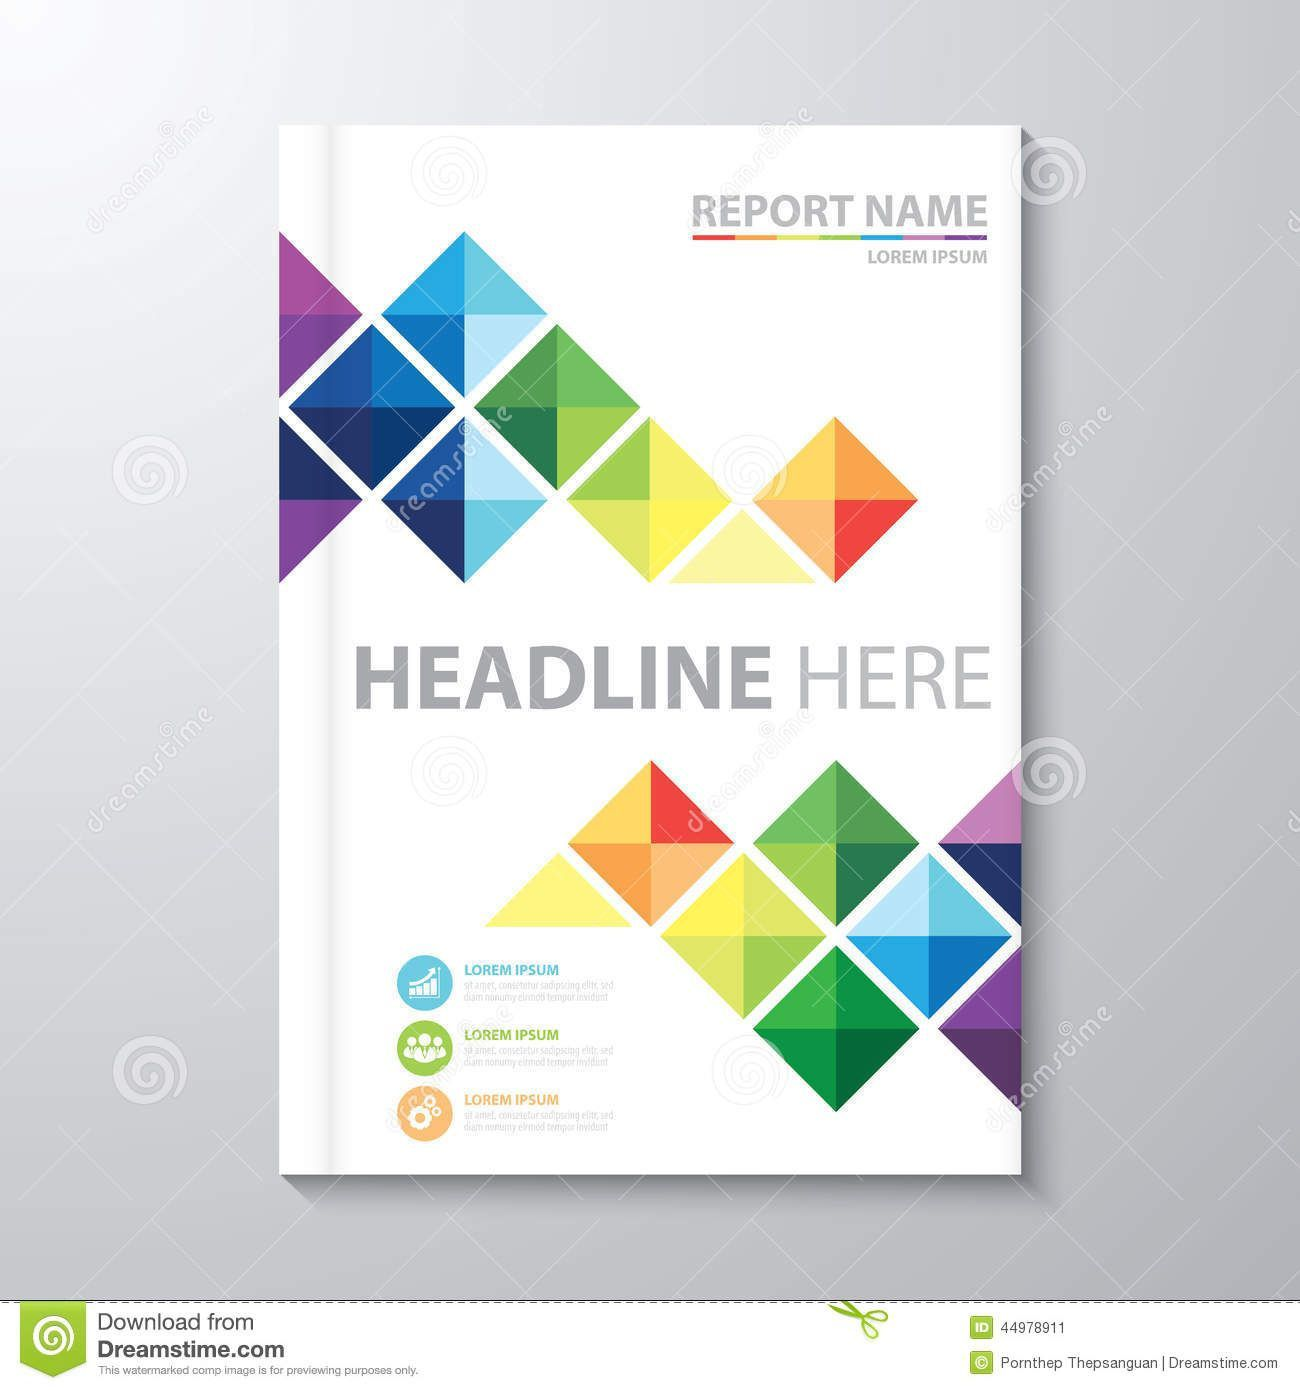 001 Incredible Free Download Annual Report Cover Design Template Example  In Word PageFull